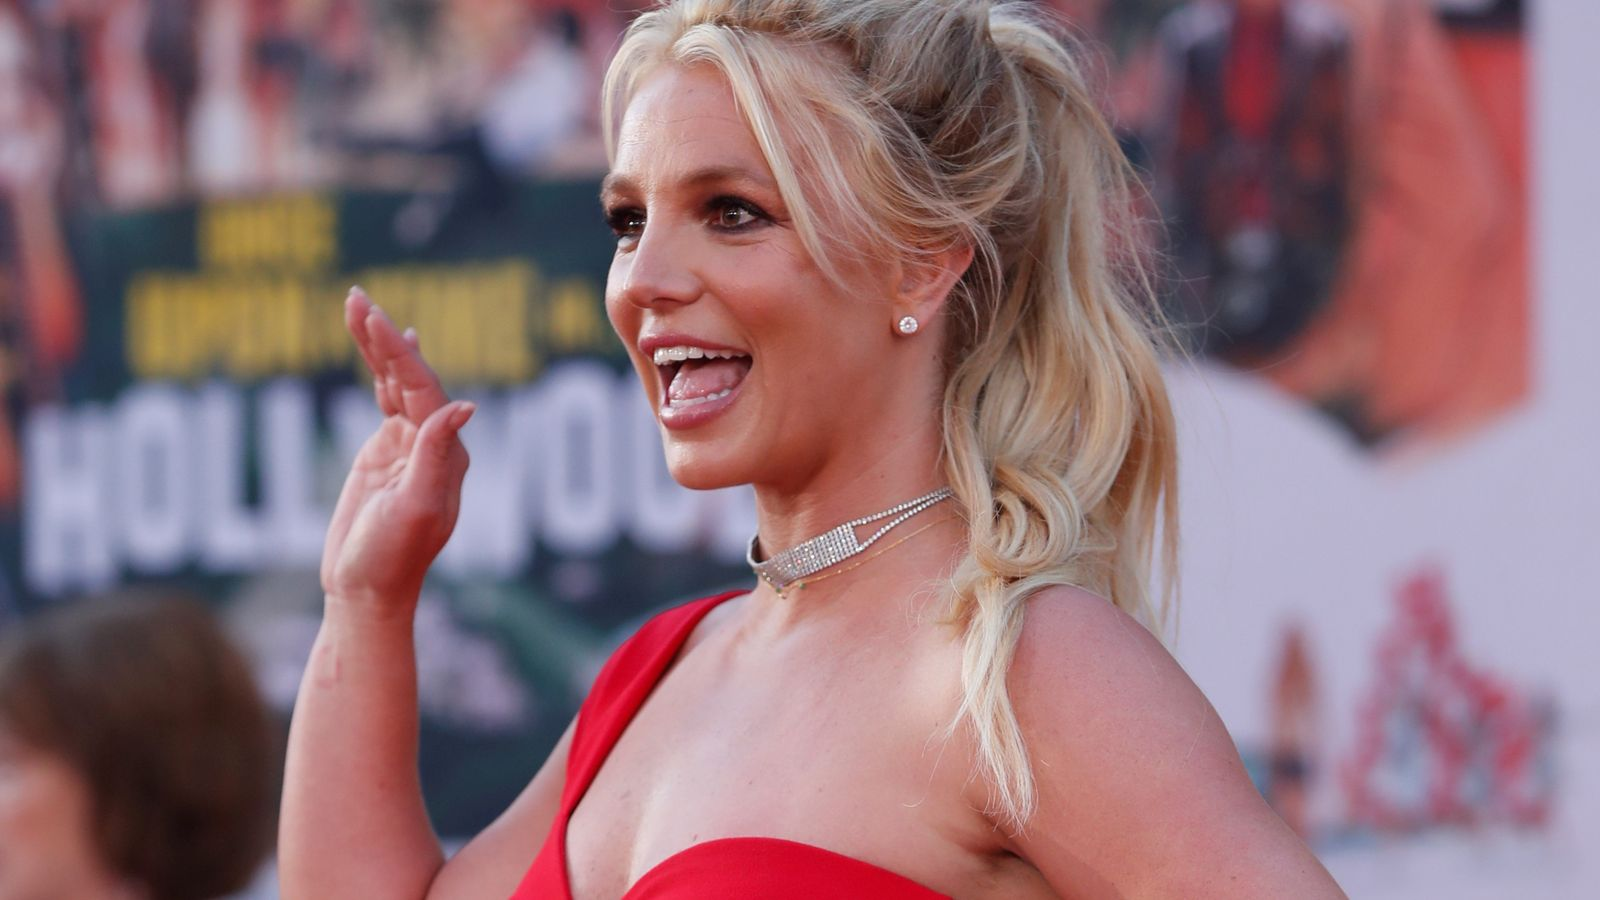 Britney Spears says she won't perform again while father Jamie Spears retains control of her career